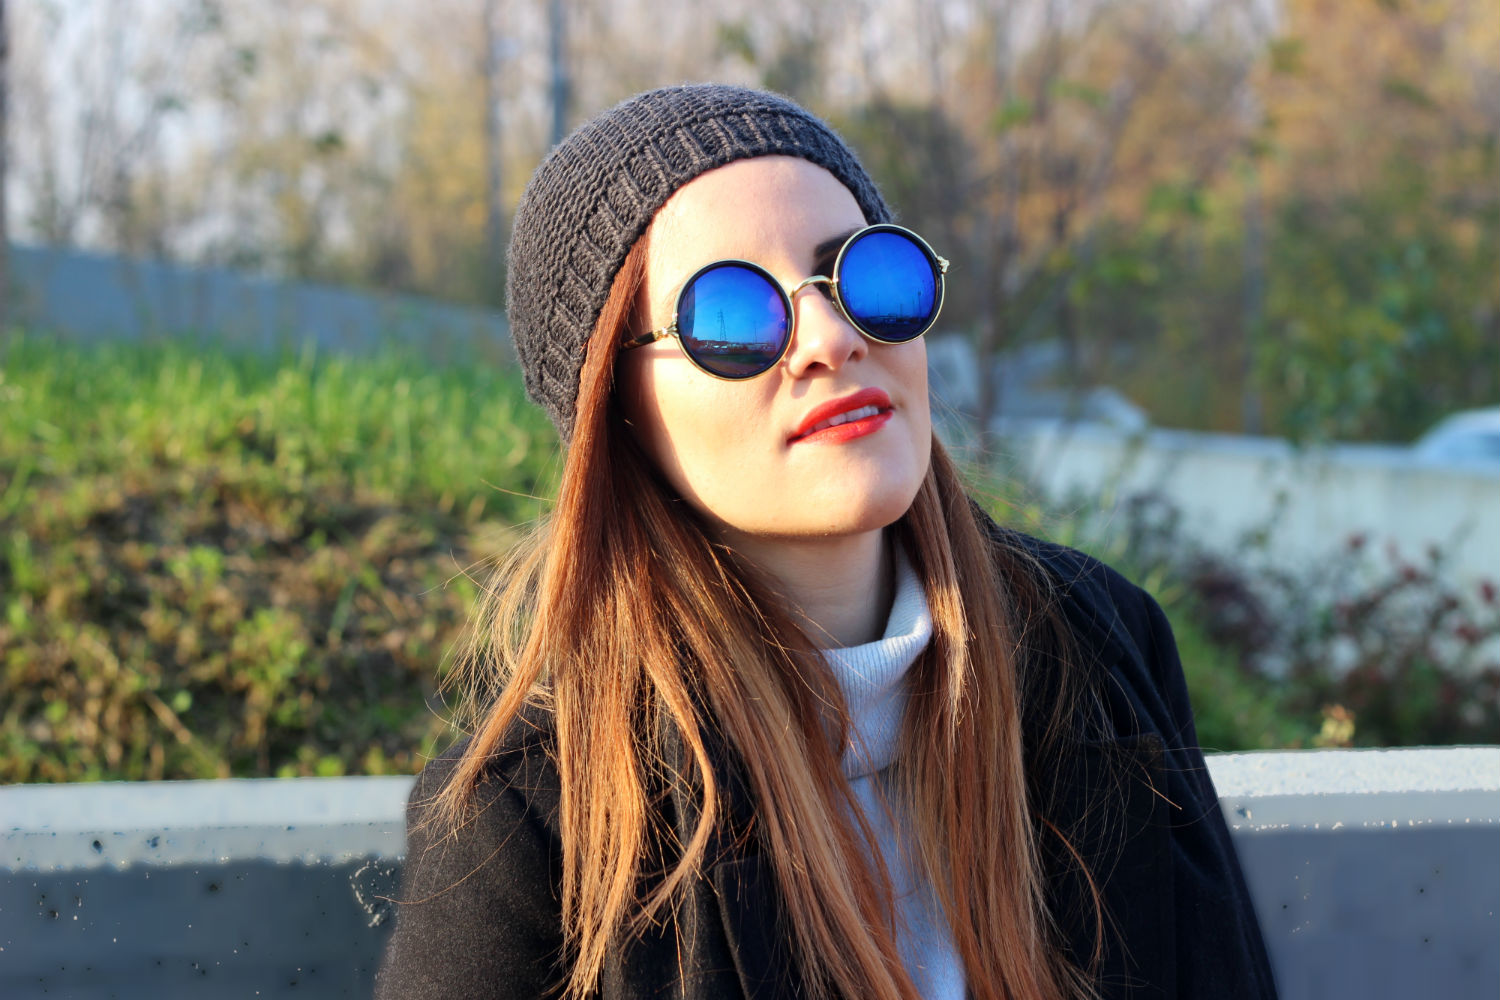 elisabetta bertolini - fashion blogger italiane - eb